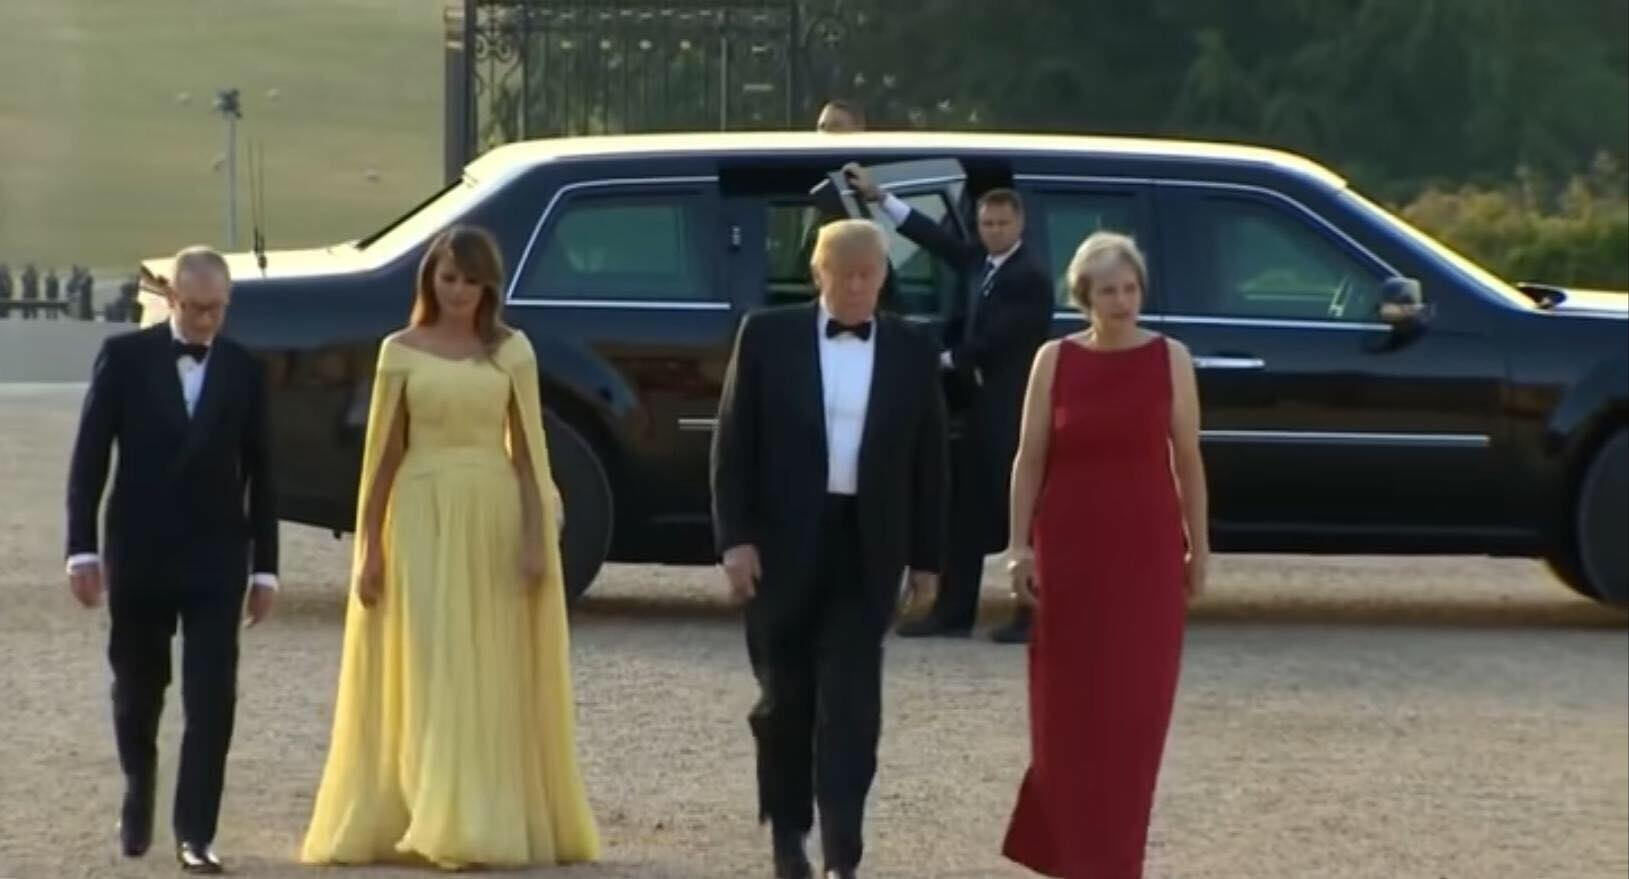 Theresa May greets POTUS and First Lady, Melania. Photo credit to screen capture by US4Trump.